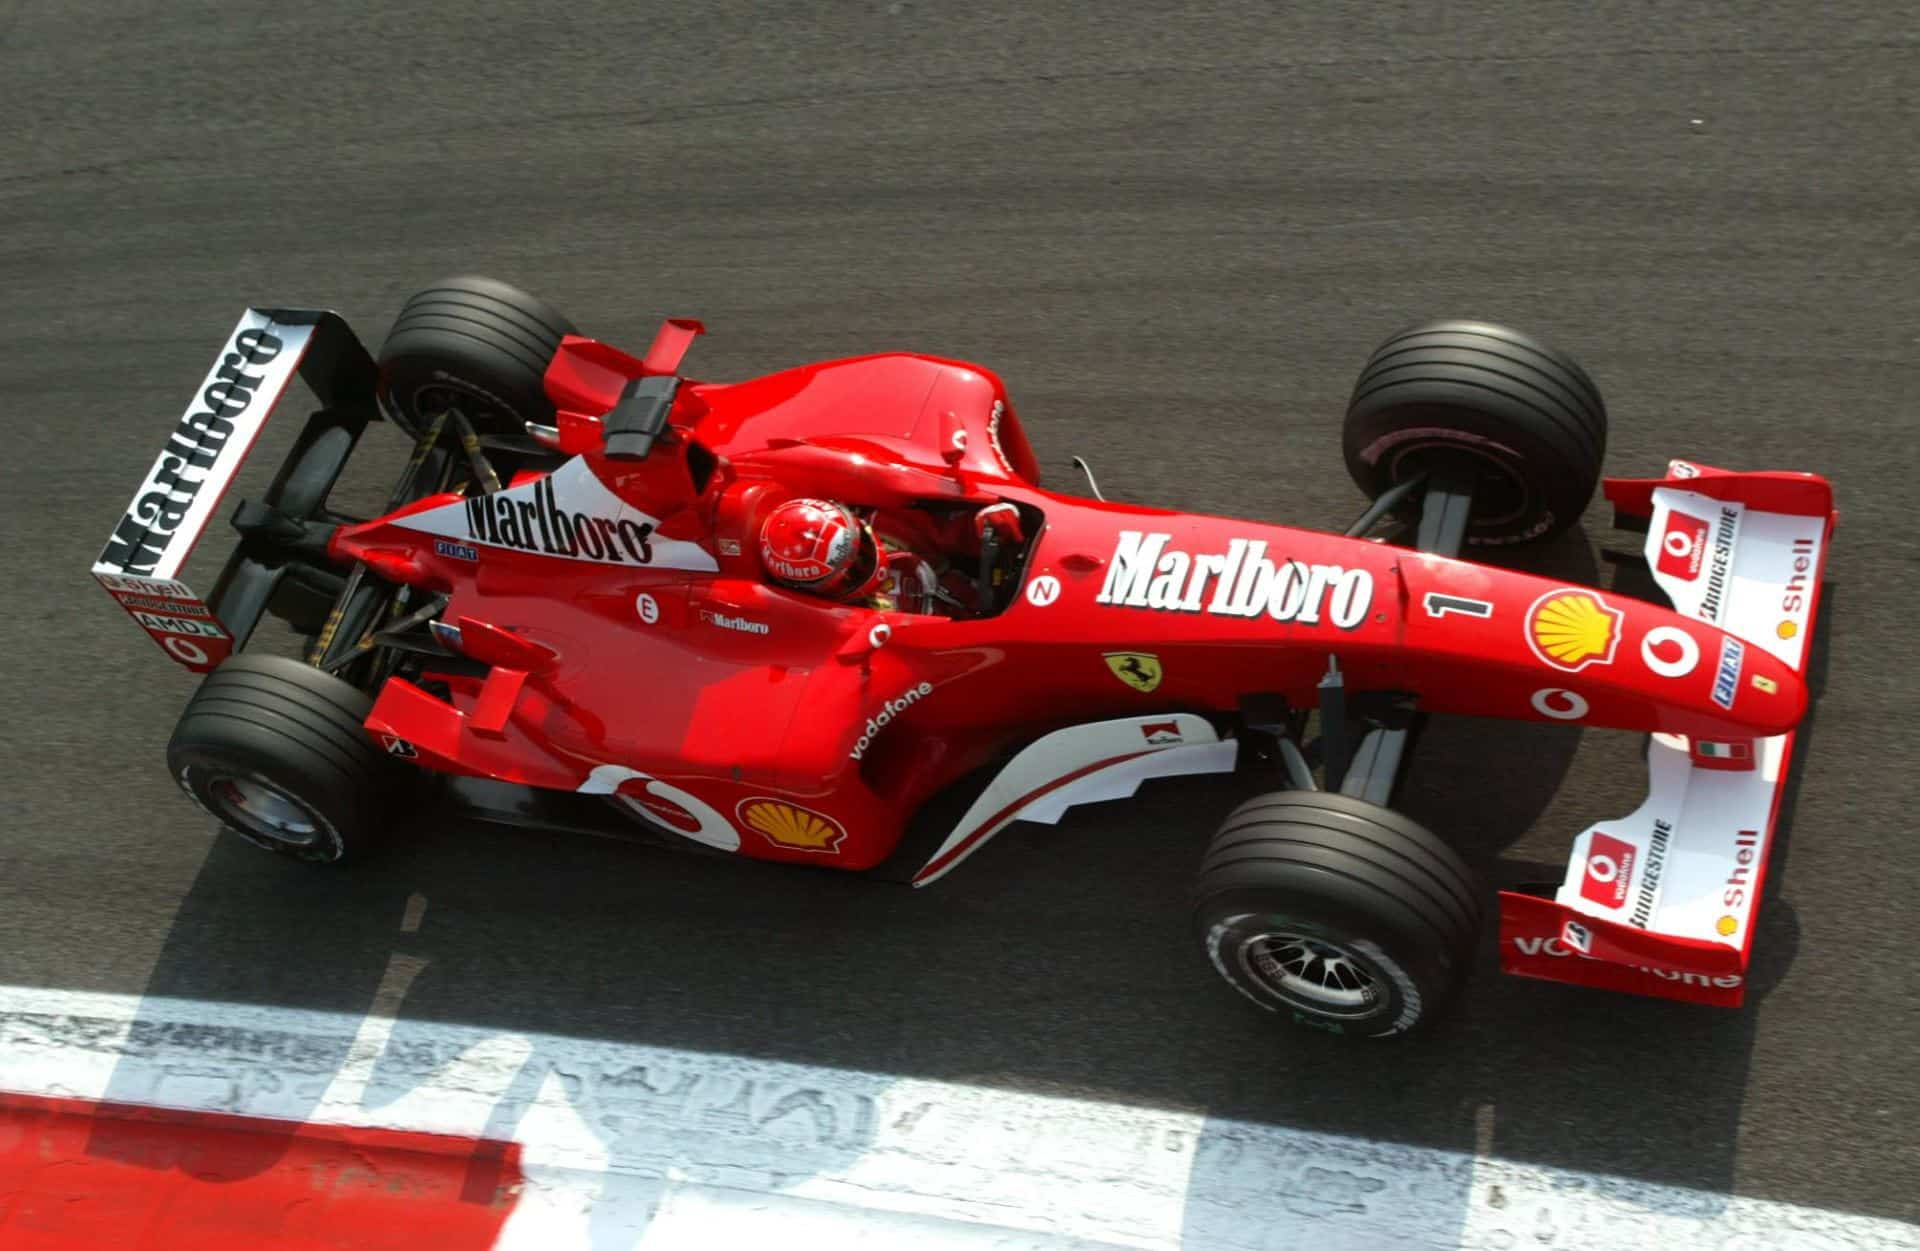 Ferrari escape 2002